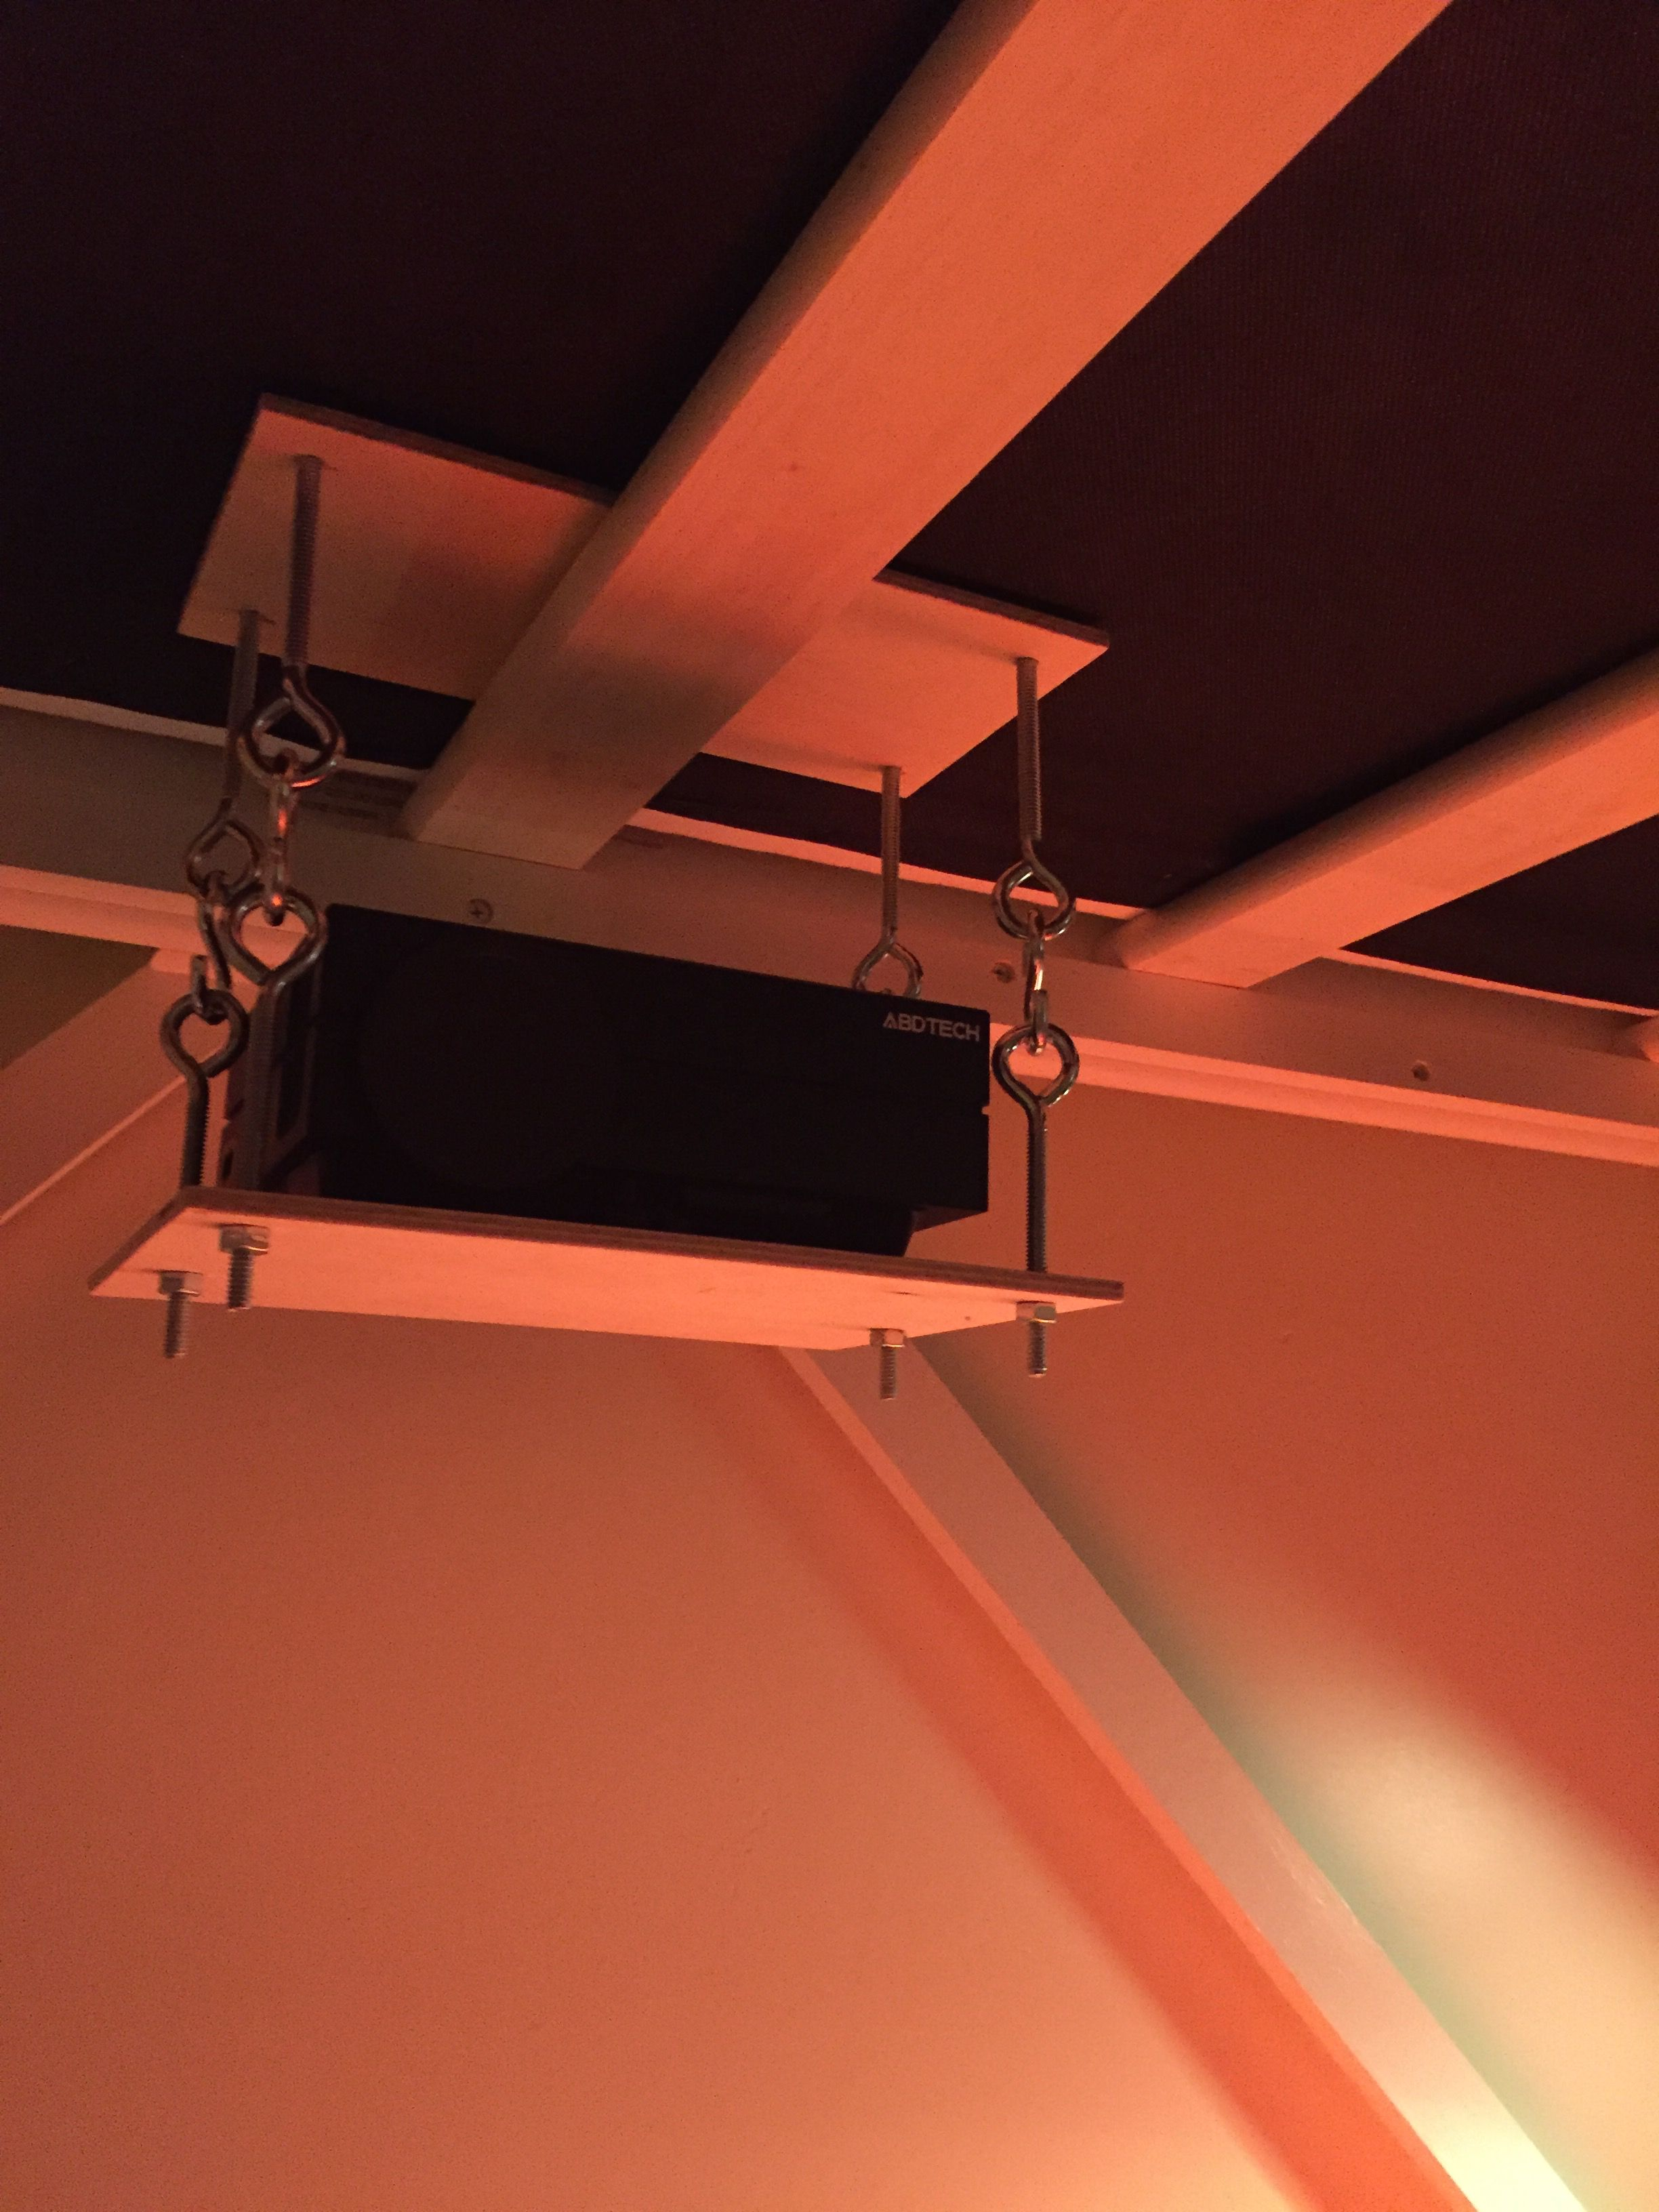 Diy Adjustable Projector Mount For Underneath Loft Bed Super Easy To Make And Cheap Home